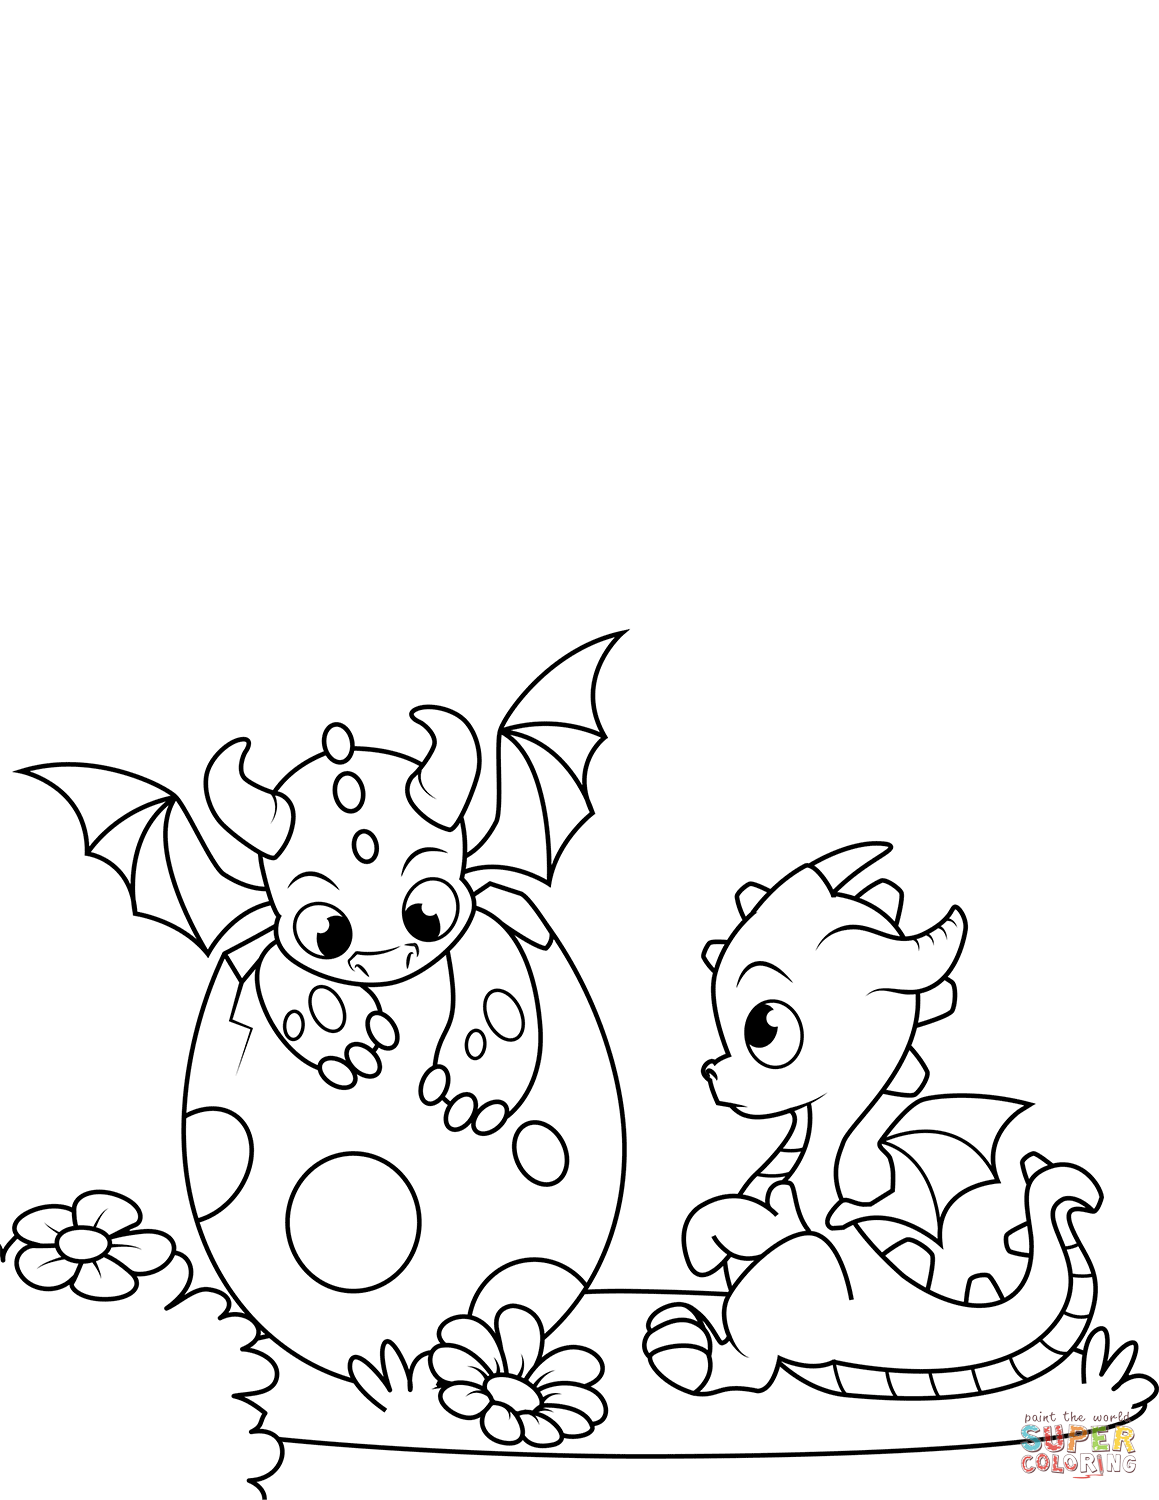 Newly Hatched Dragons Coloring Page Free Printable Coloring Pages Bunny Coloring Pages Cartoon Coloring Pages Dragon Coloring Page